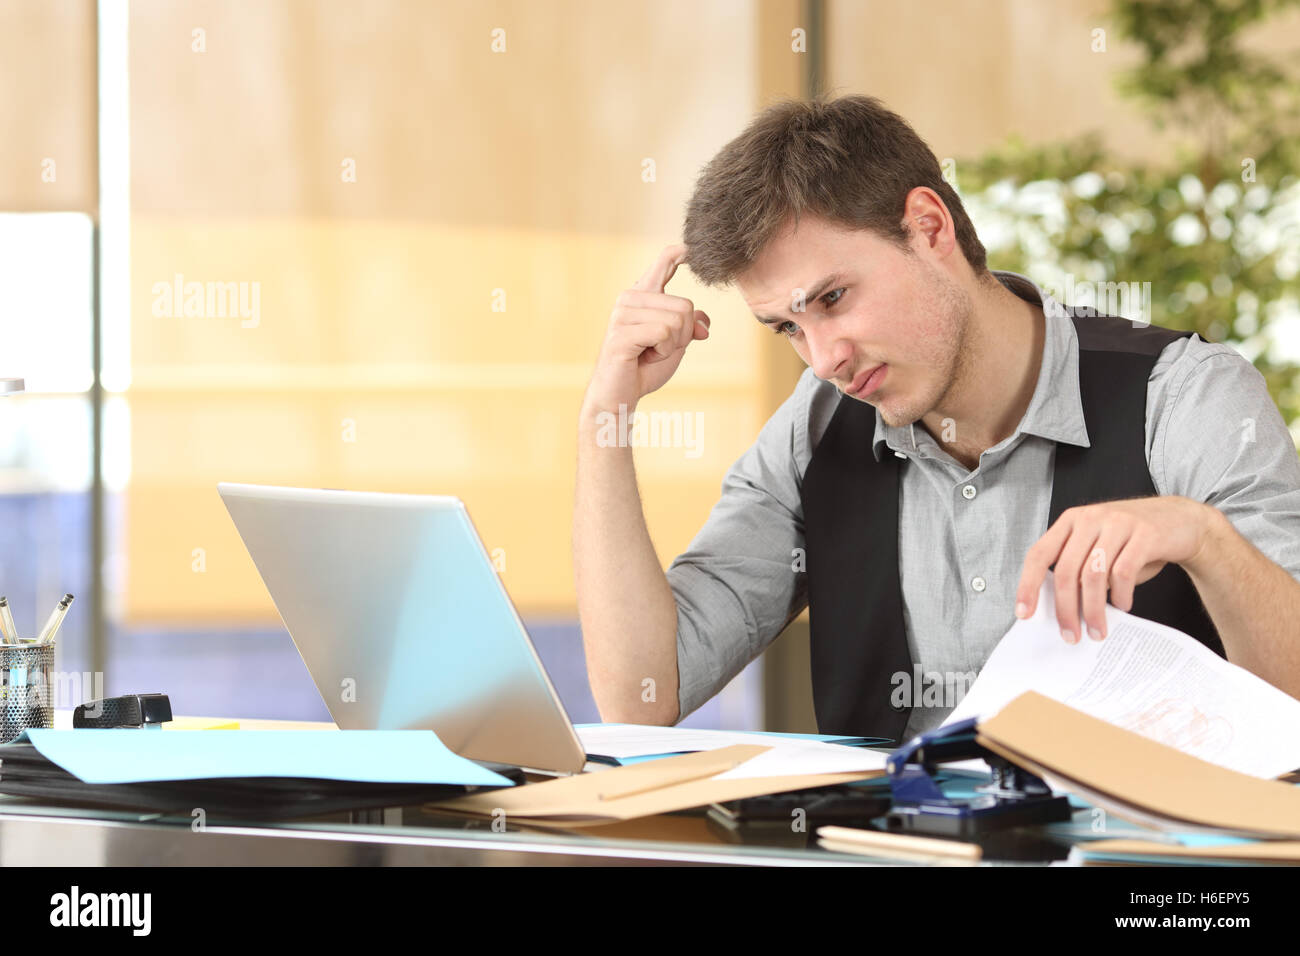 Incompetent businessman thinking how to do his job online with messy desk at office - Stock Image